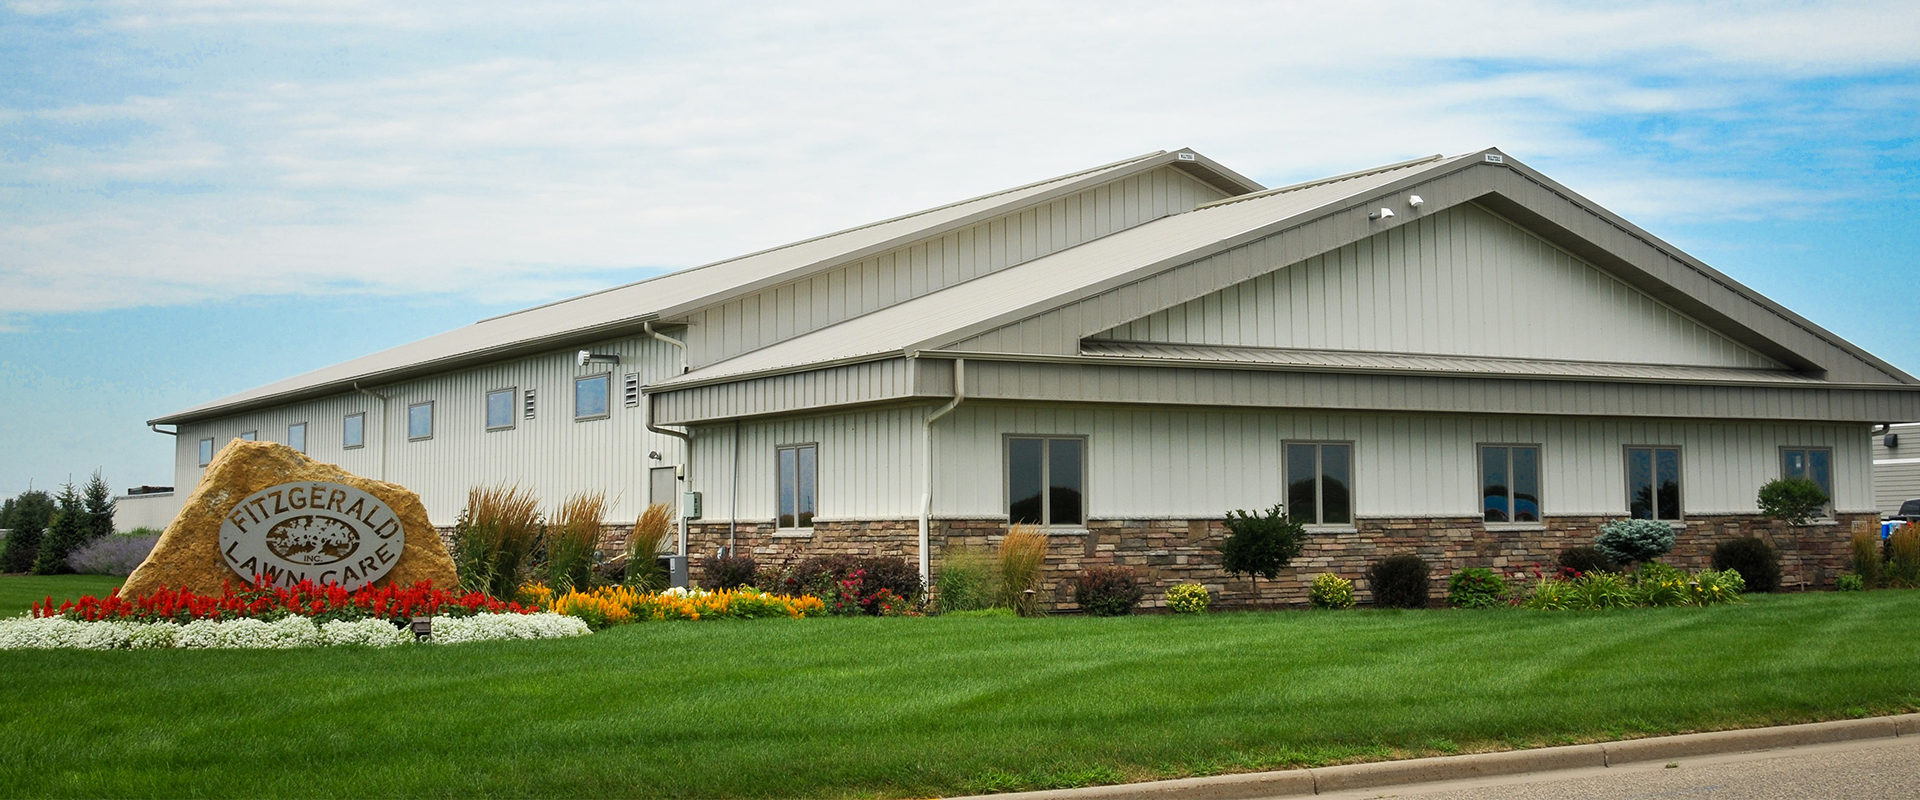 Proudly Owned & Operated in New Richmond, WI